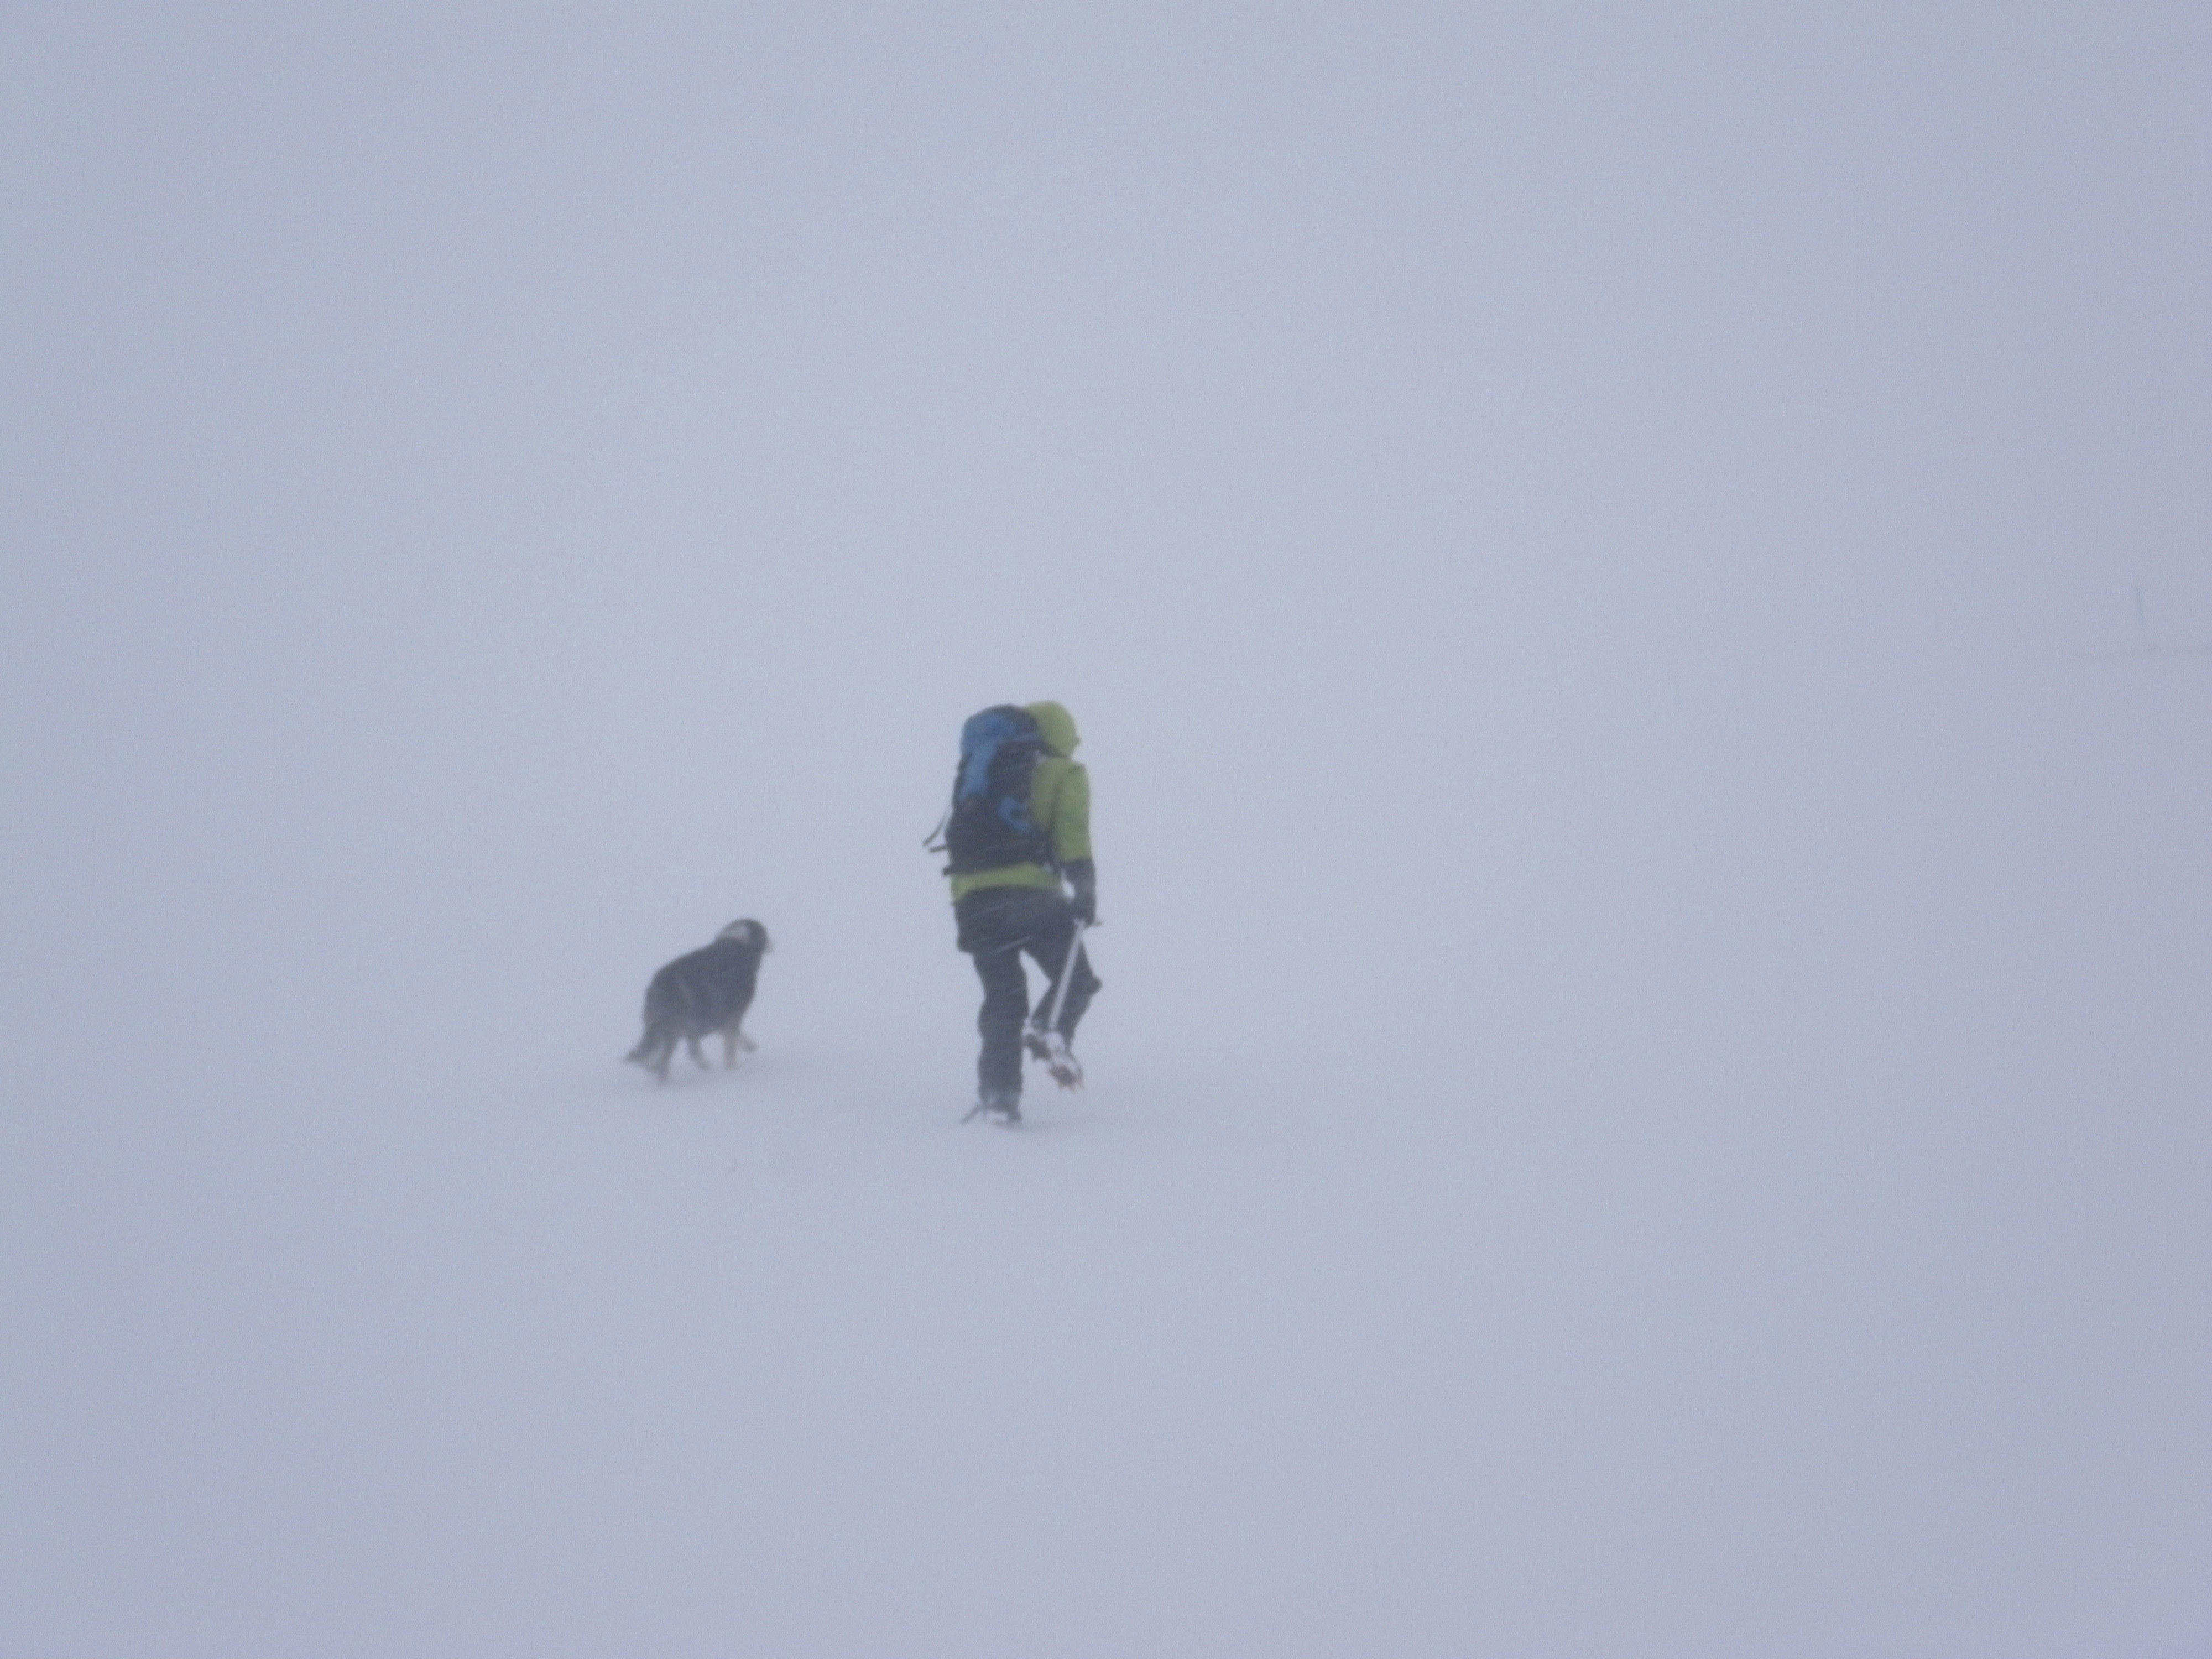 Blizzard conditions at 1000m